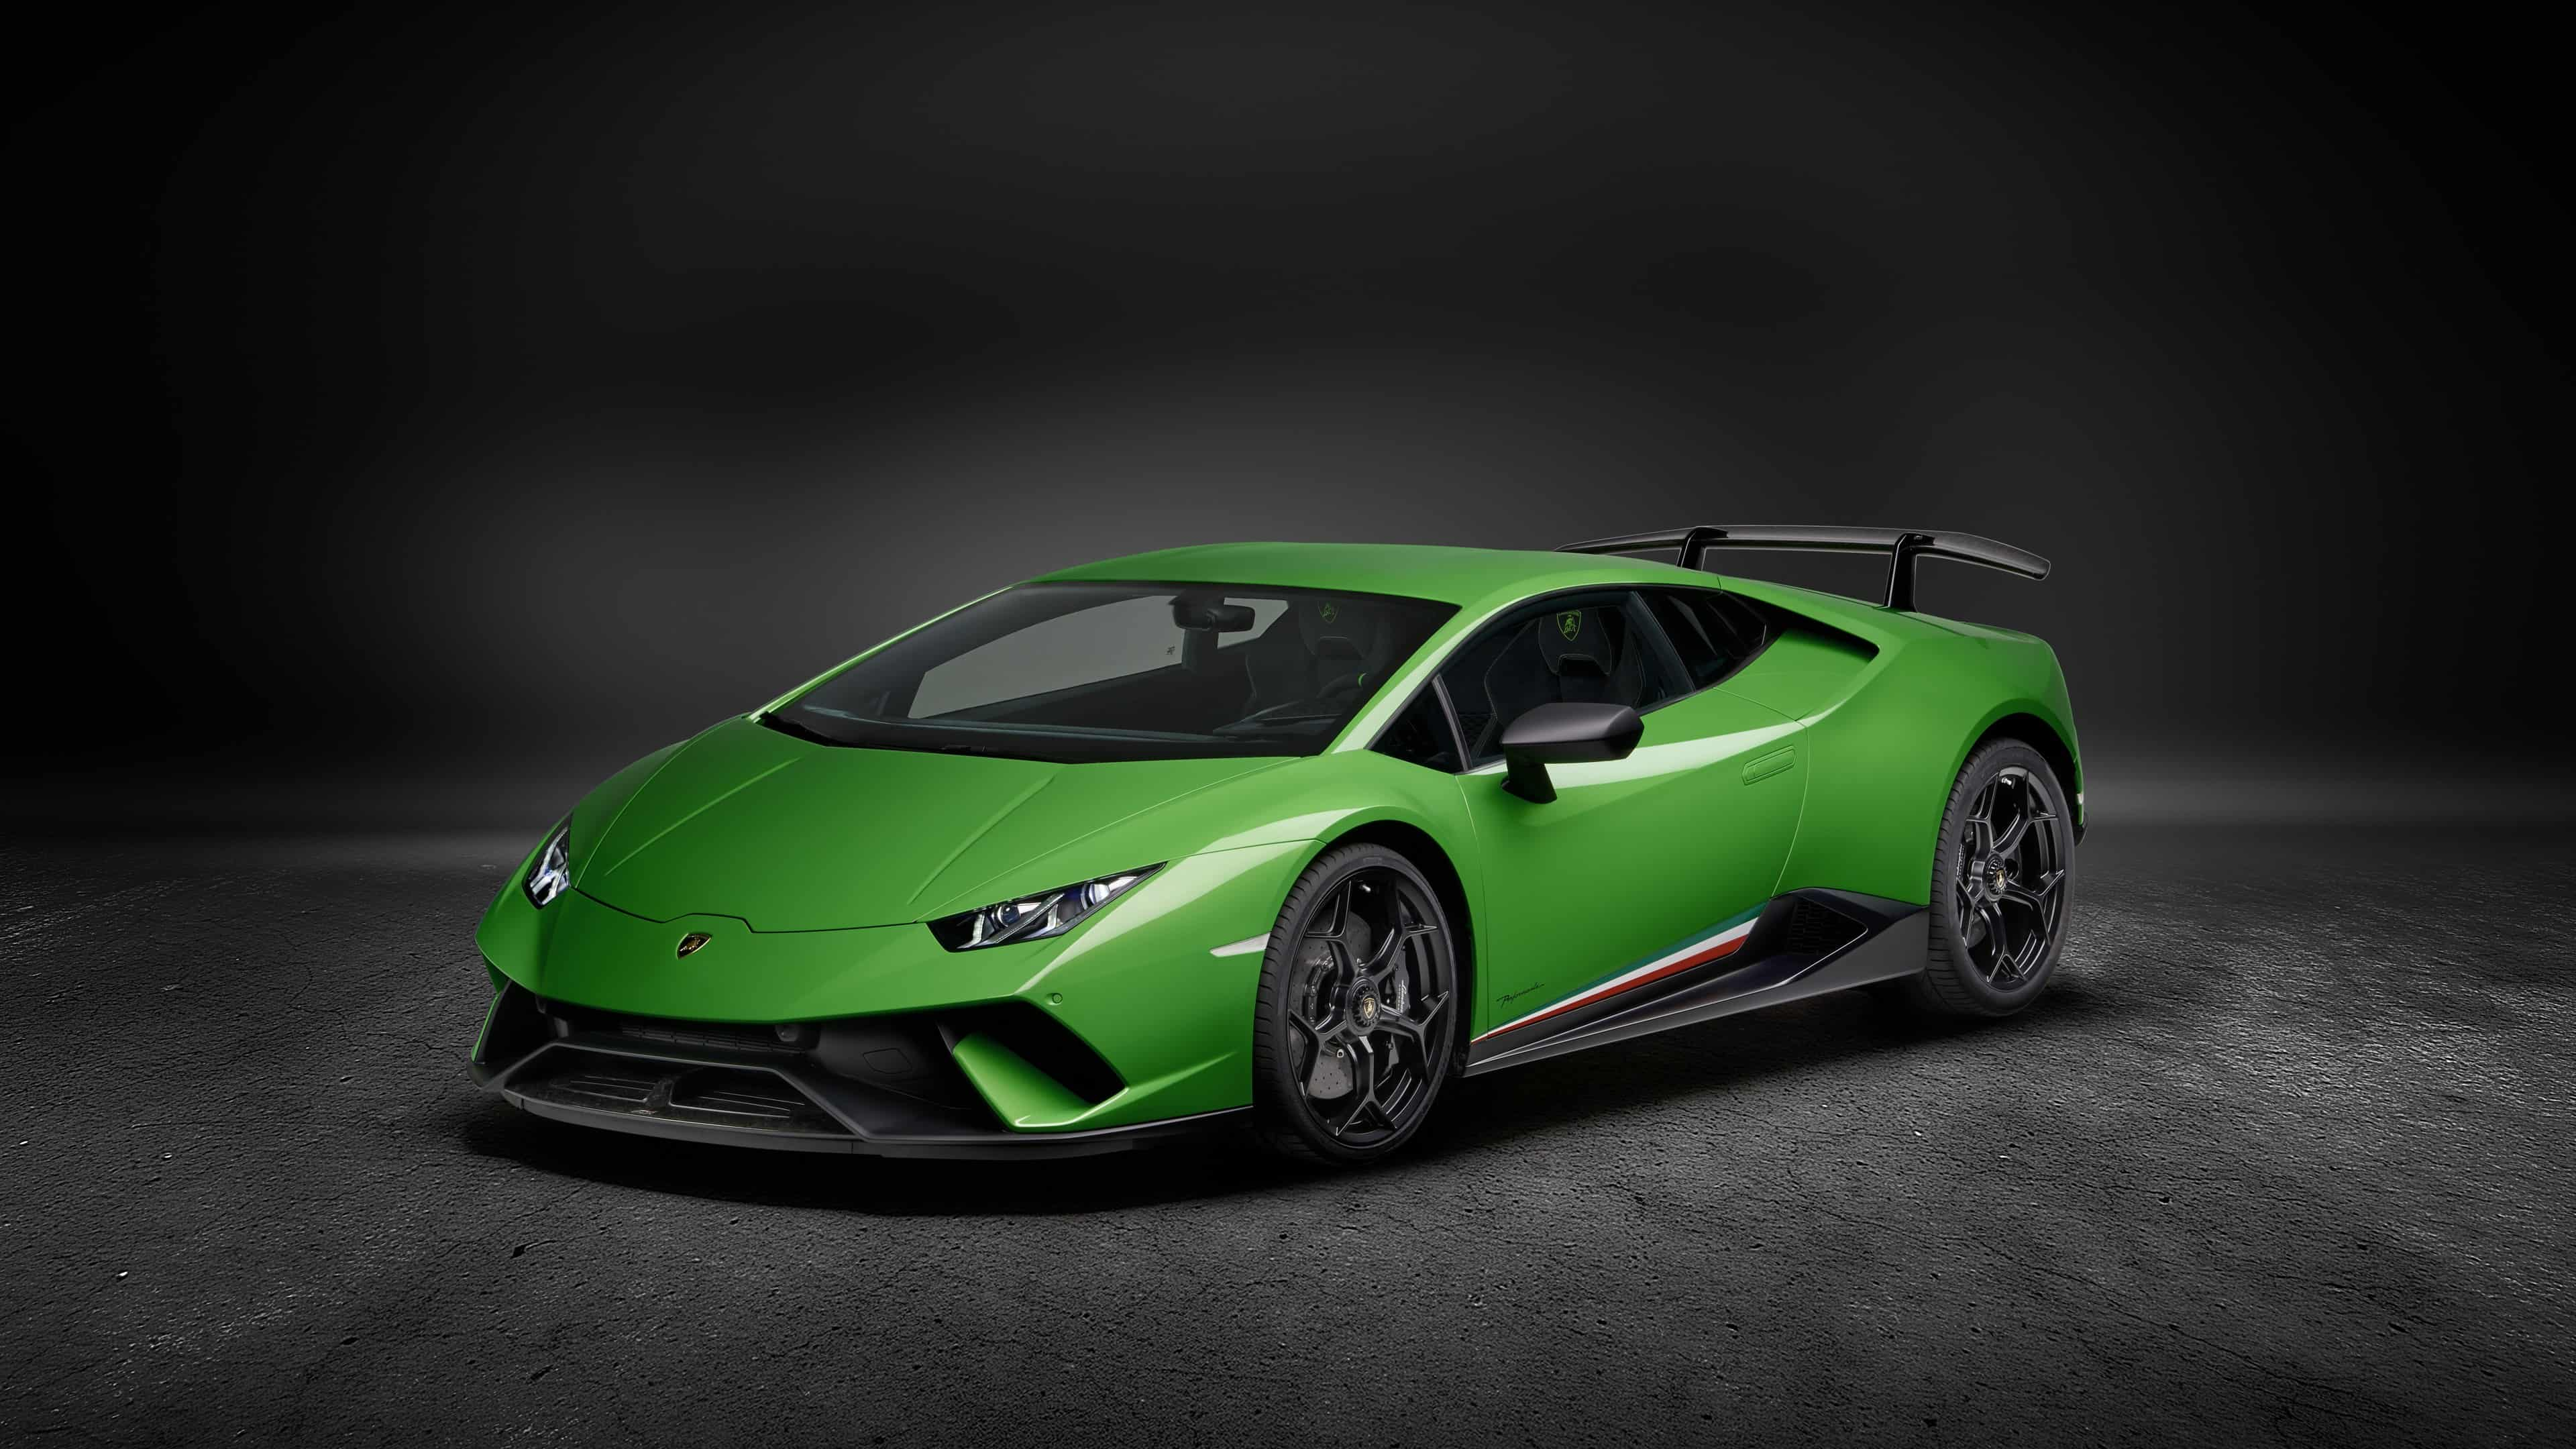 Lamborghini Huracan Performante UHD 4K Wallpaper